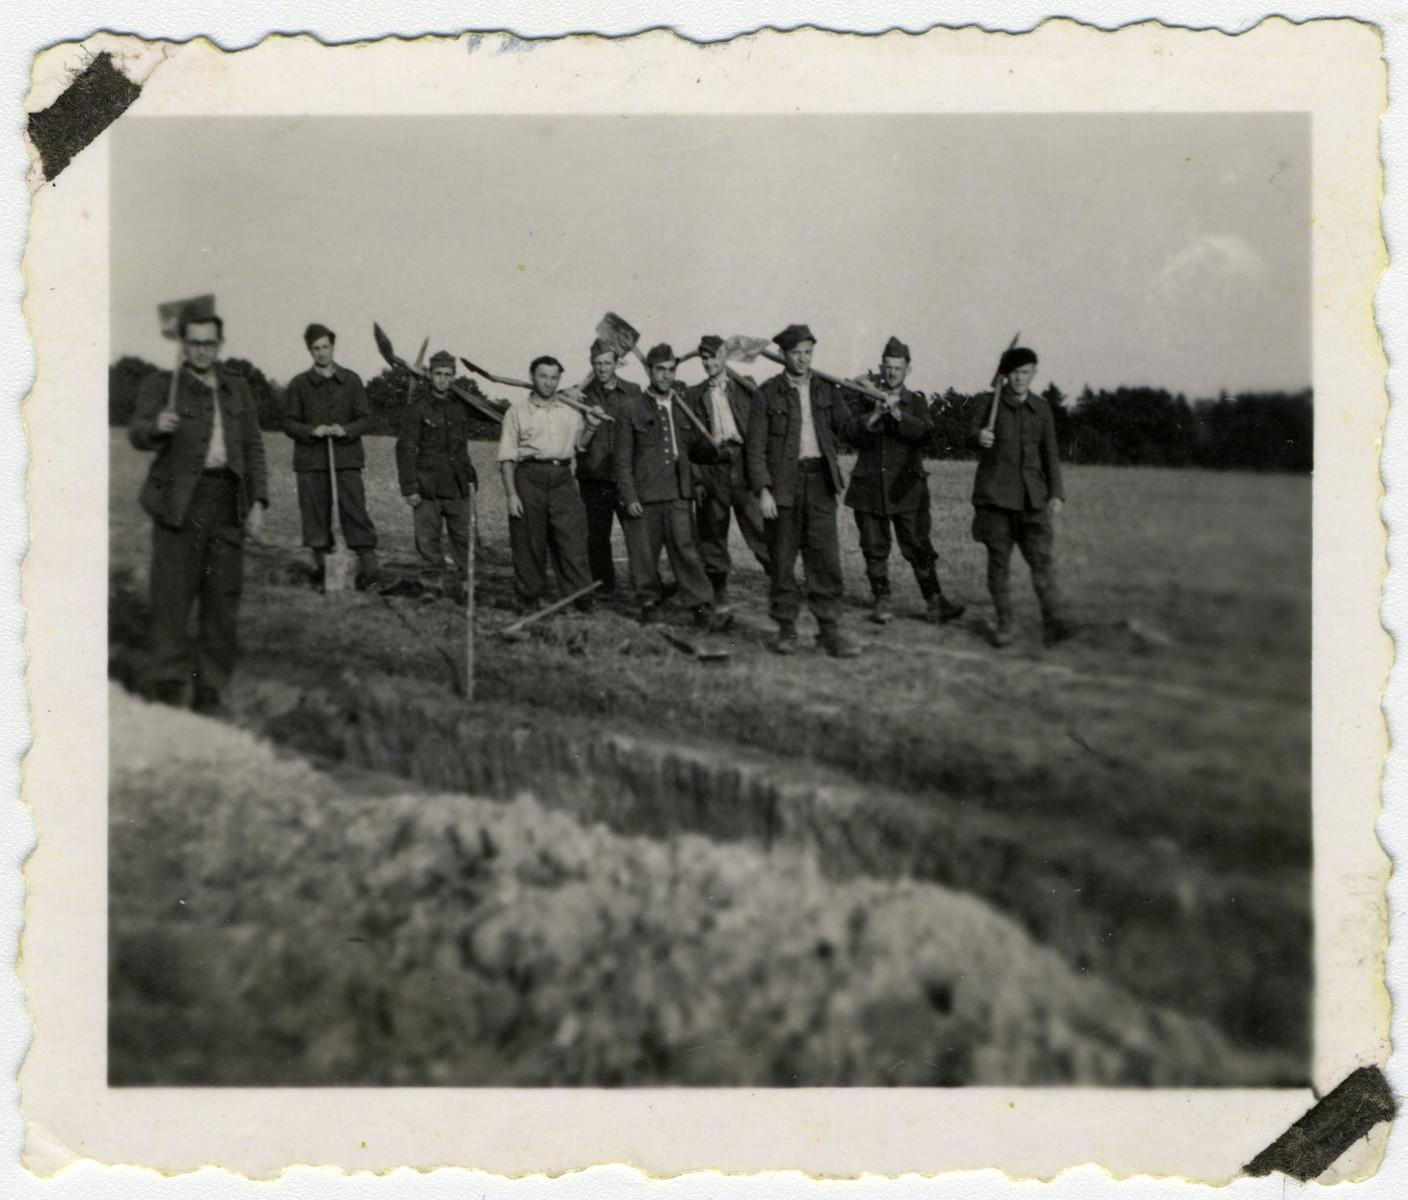 Jewish prisoners-of-war pose with shovels while doing forced labor in an Arbeitskommando.